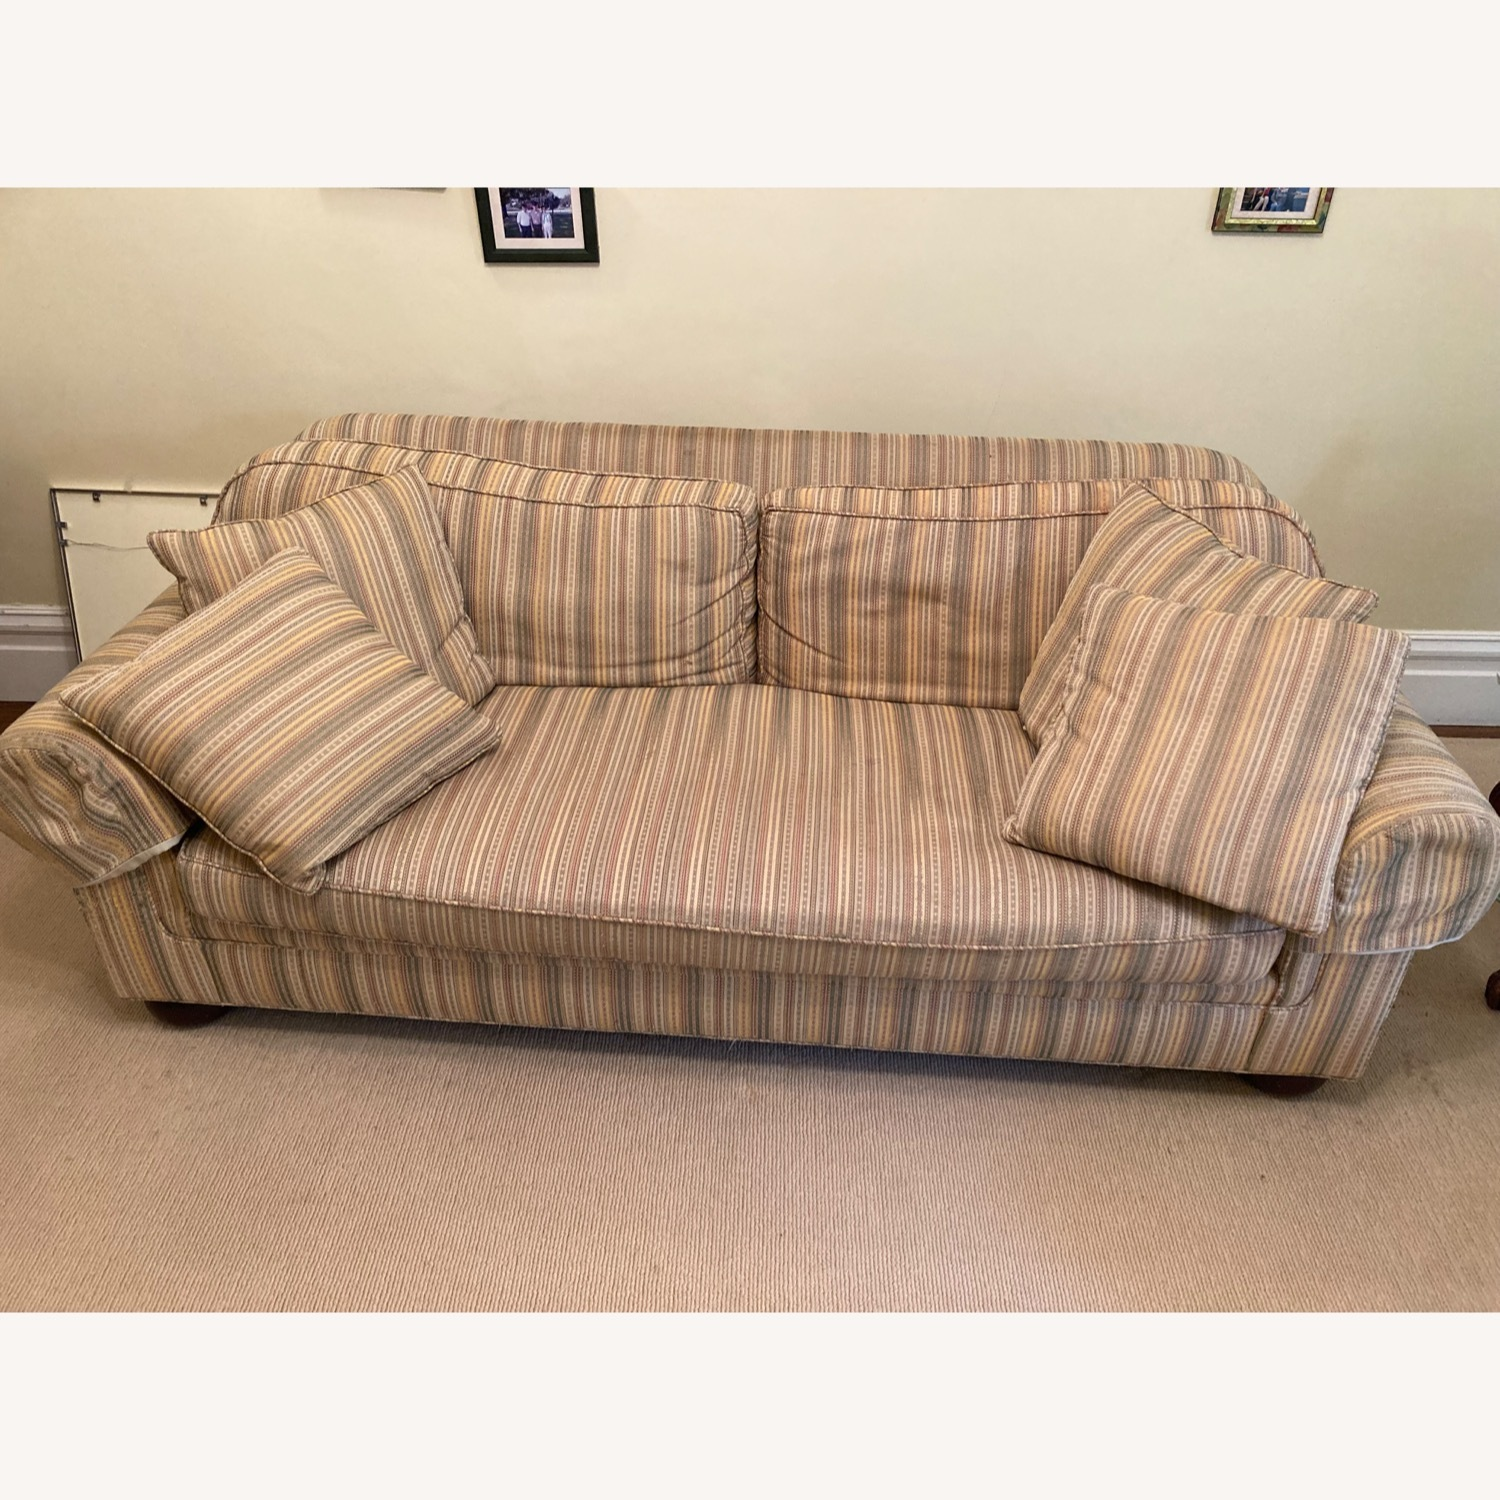 Stickley Brothers Furniture Well Made Designer Couch - image-1